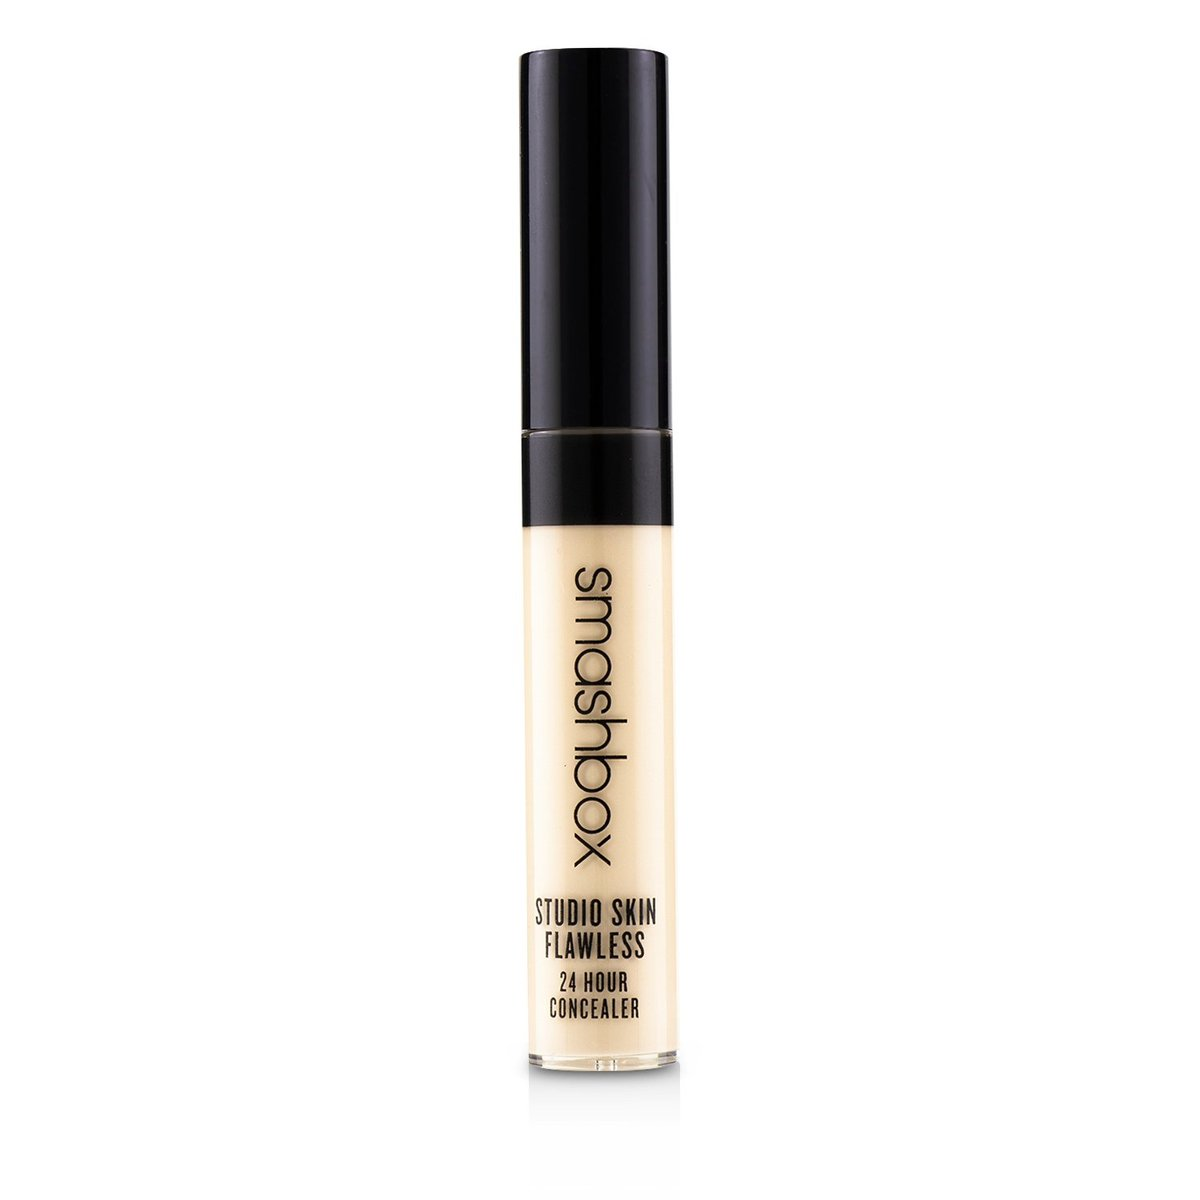 Studio Skin Flawless 24 Hour Concealer - # Fair Neutral[平行進口]